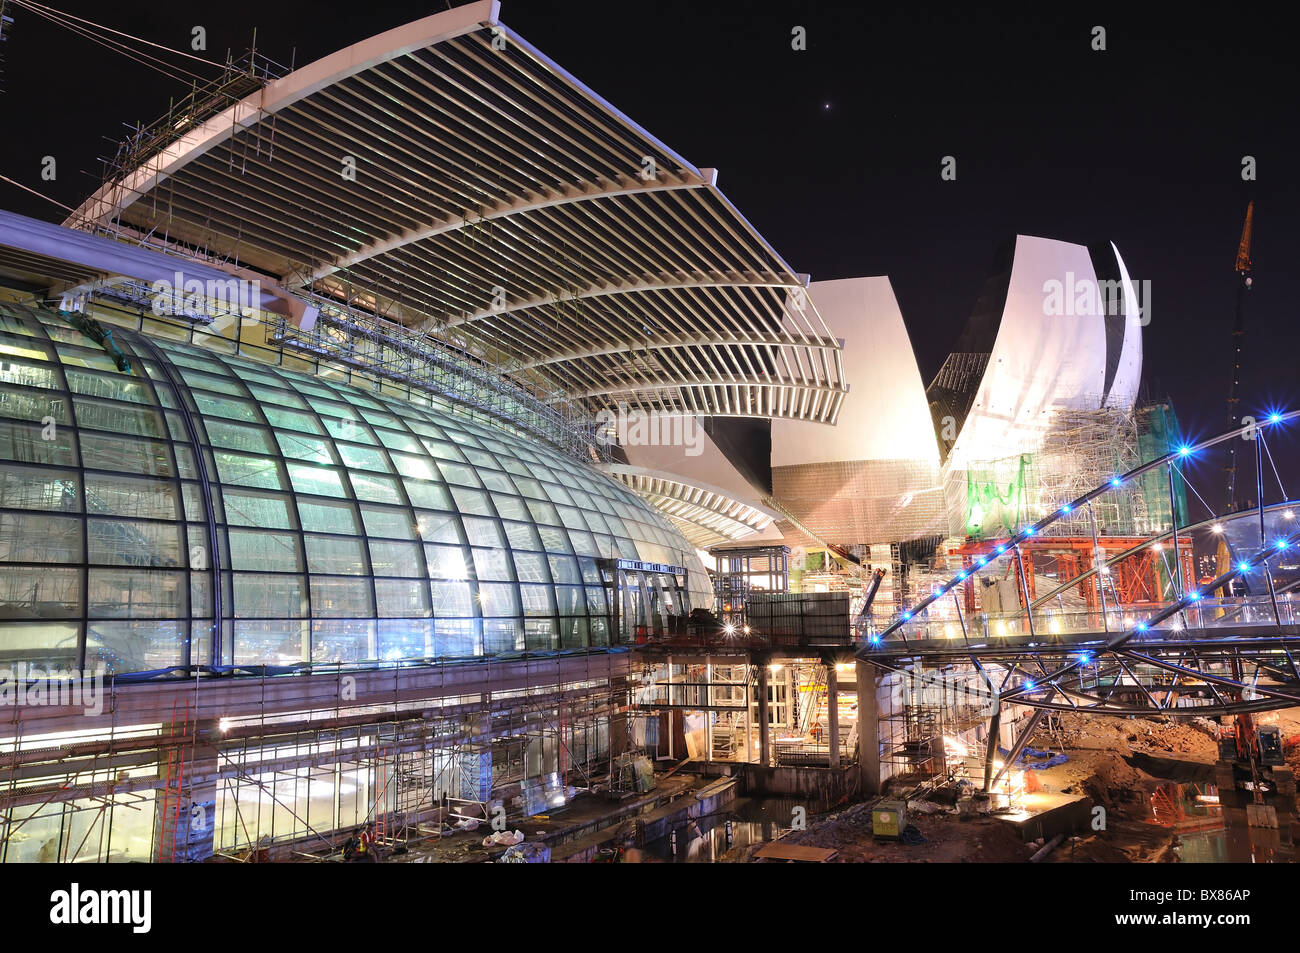 Construction works at the Marina Bay Sands Hotel and Integrated Resort in Singapore. Stock Photo